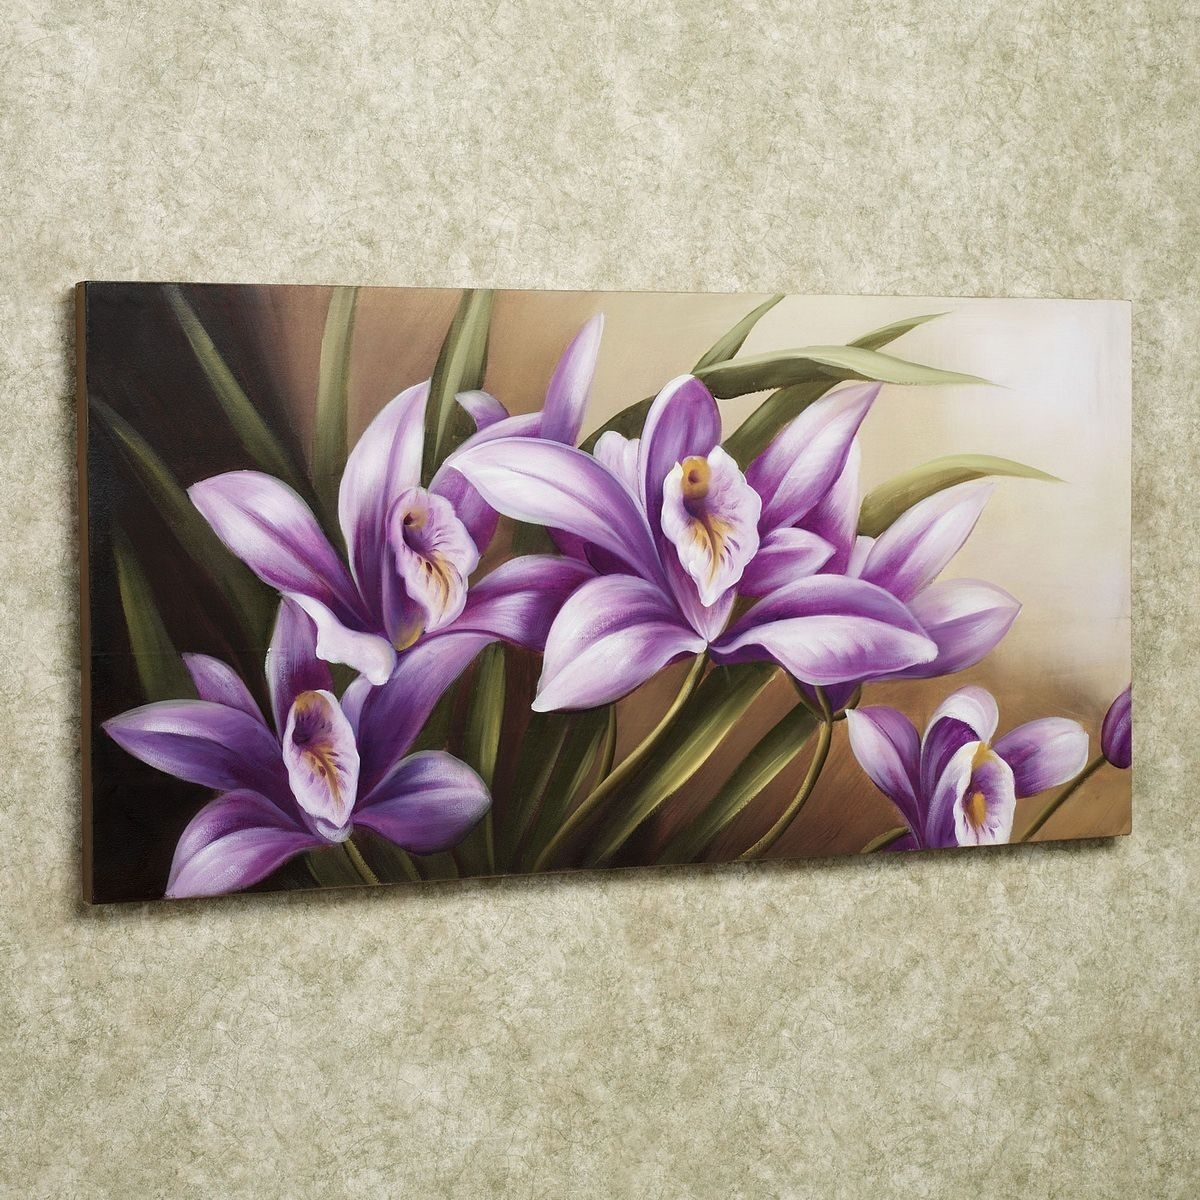 Easy Canvas Painting Ideas:scenic Ideas Sensuality Of Iris Purple Pertaining To Most Up To Date Purple Flowers Canvas Wall Art (Gallery 7 of 15)